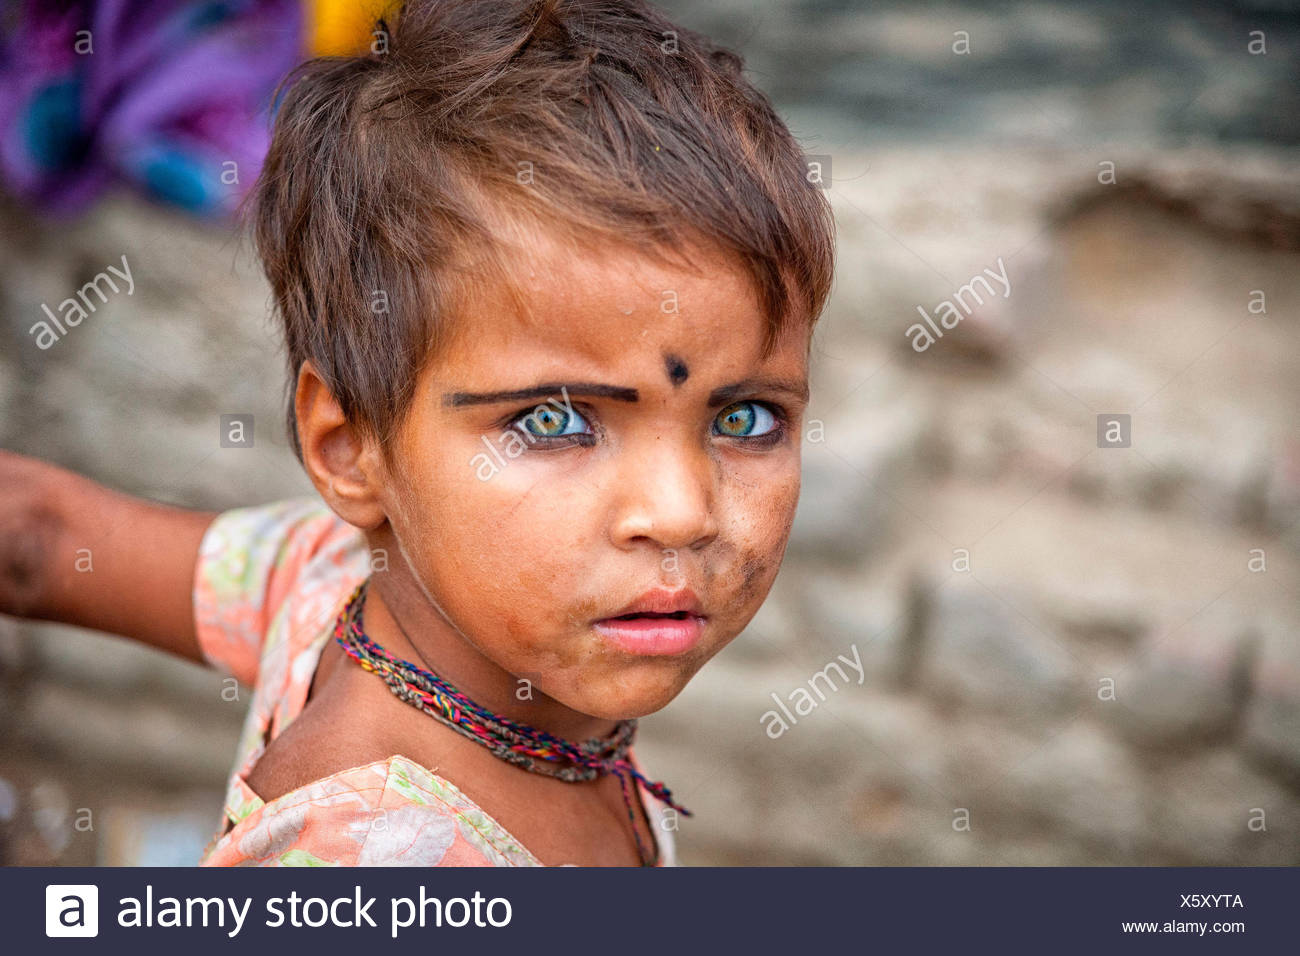 Asia,Rajasthan, India. Portrait of an Indian child. - Stock Image